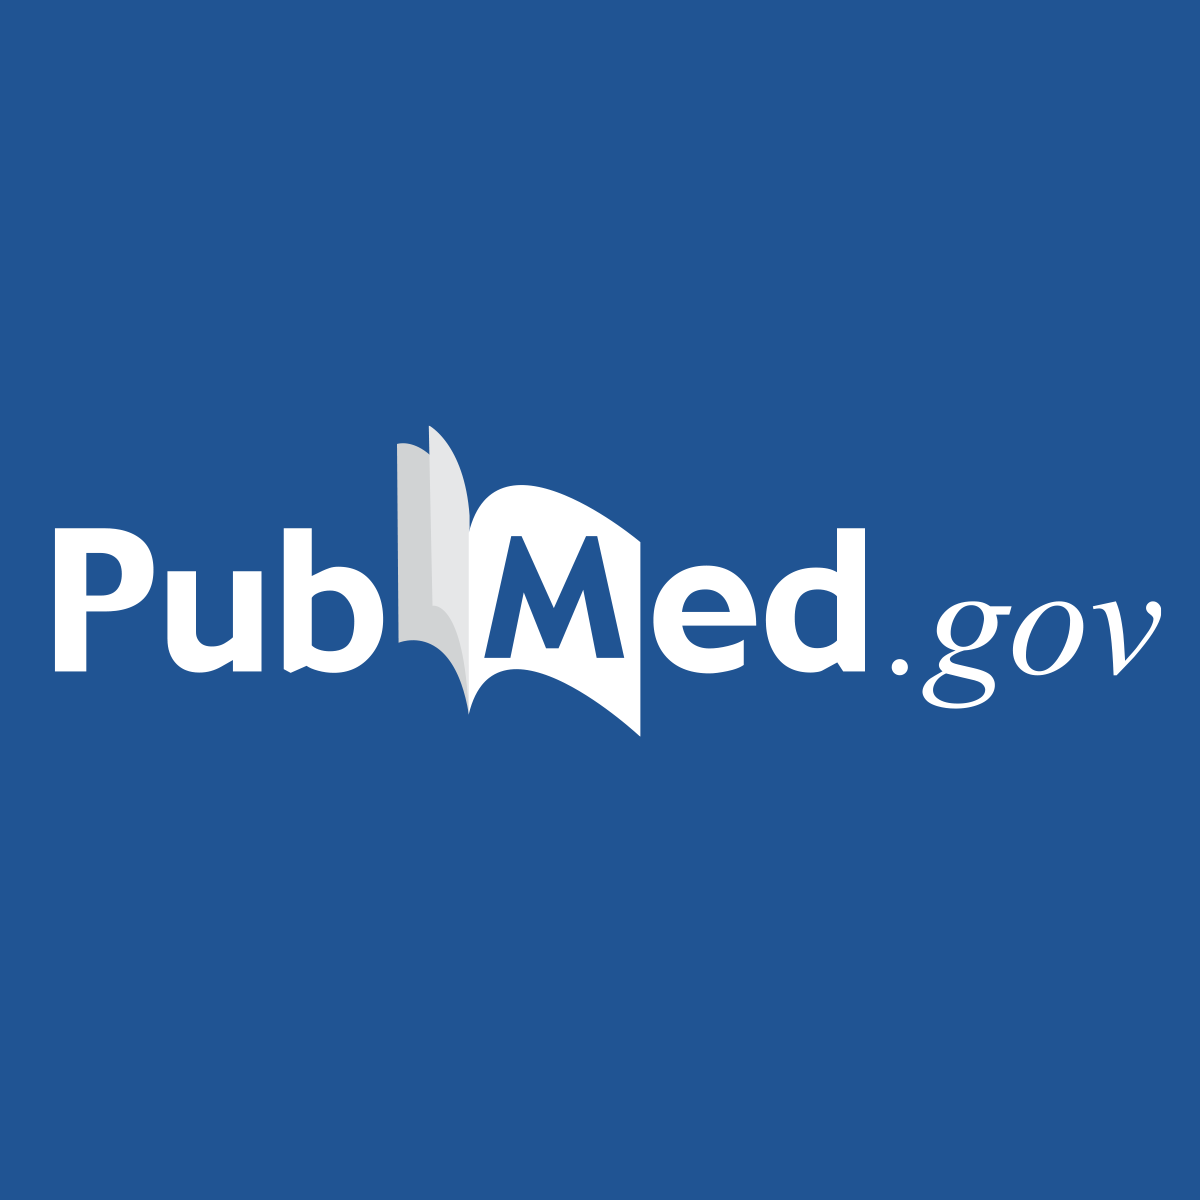 Addicted and nonaddicted drug users. A comparison of drug usage patterns - PubMed